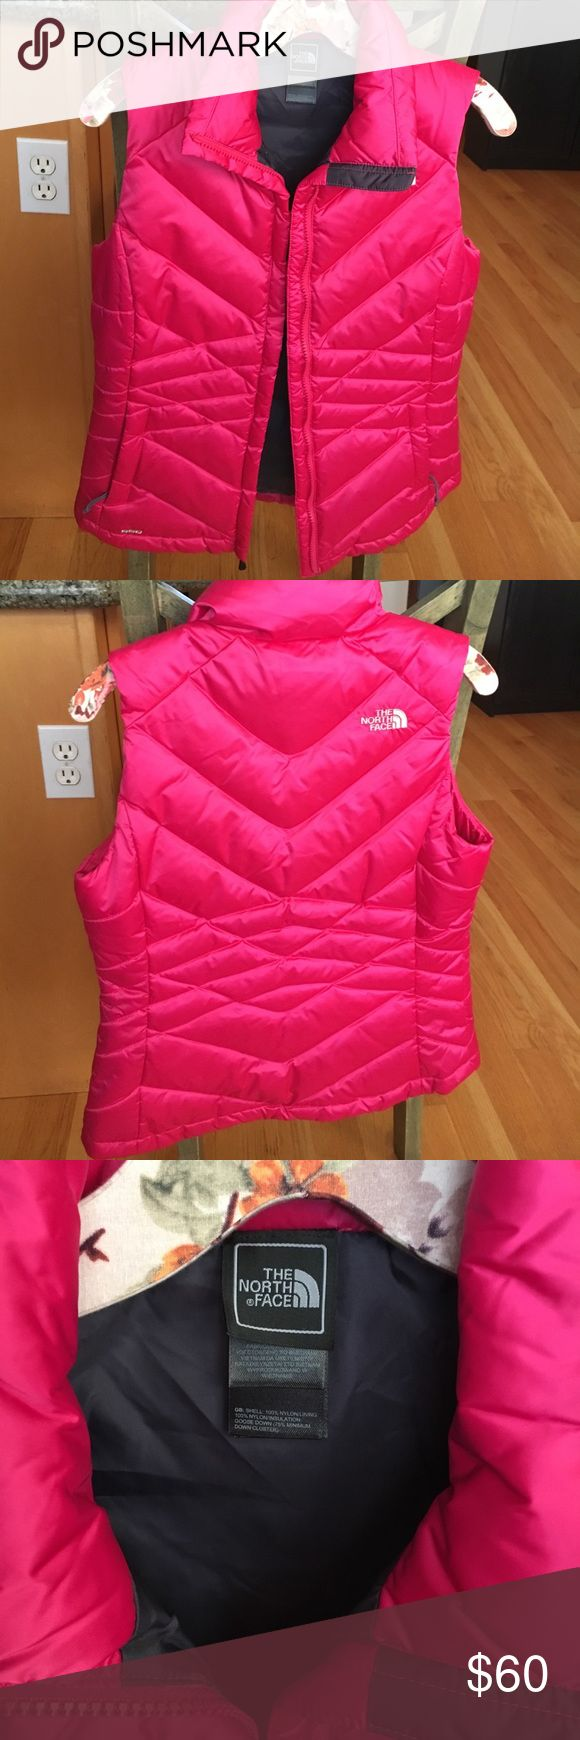 Brand new, hot pink, down North Face vest. Brand new, hot pink, down North Face vest. The North Face Jackets & Coats Vests